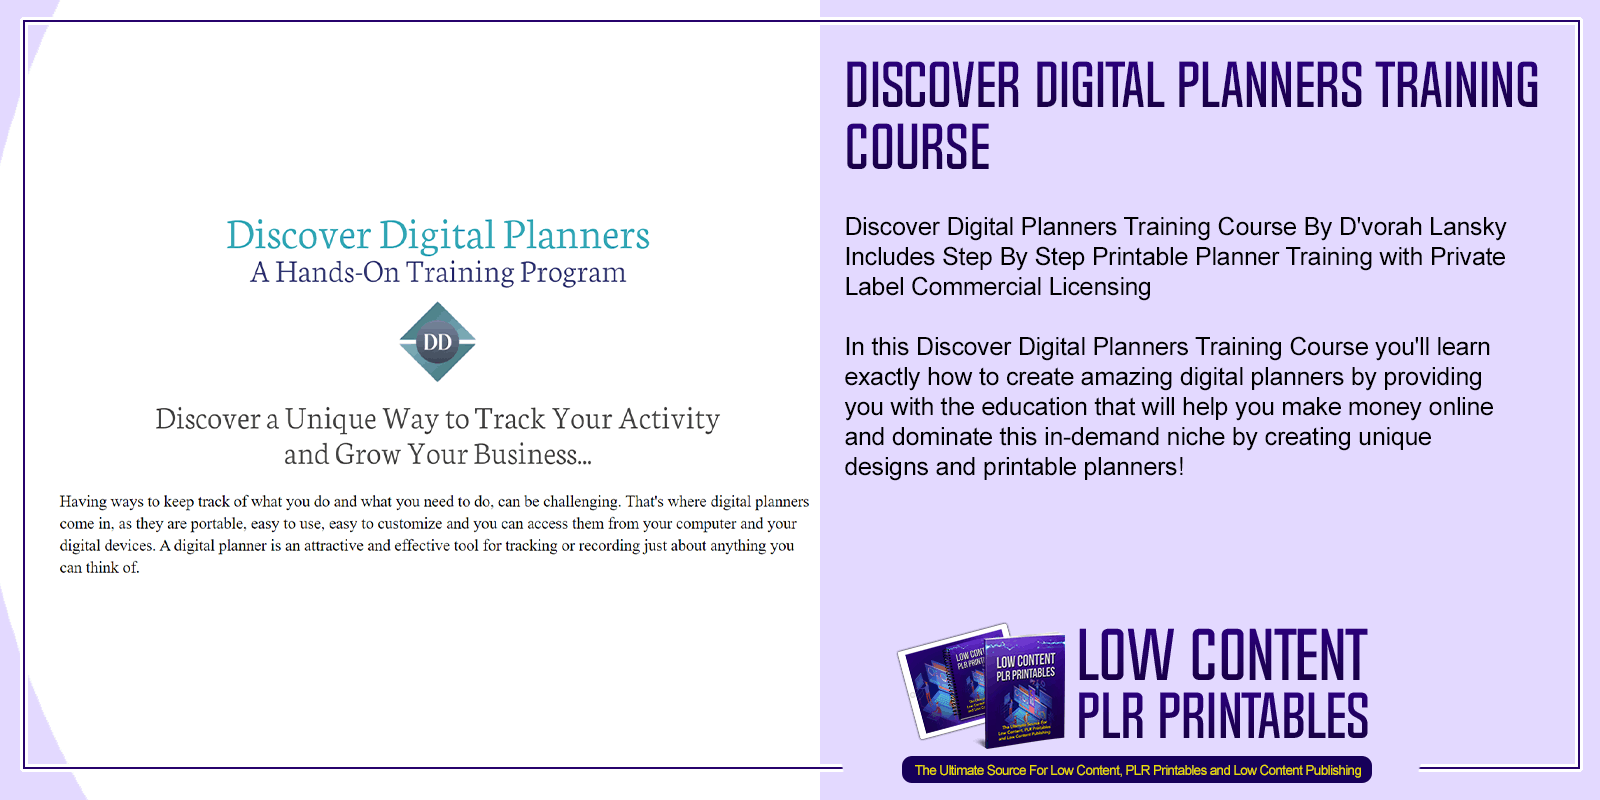 Discover Digital Planners Training Course